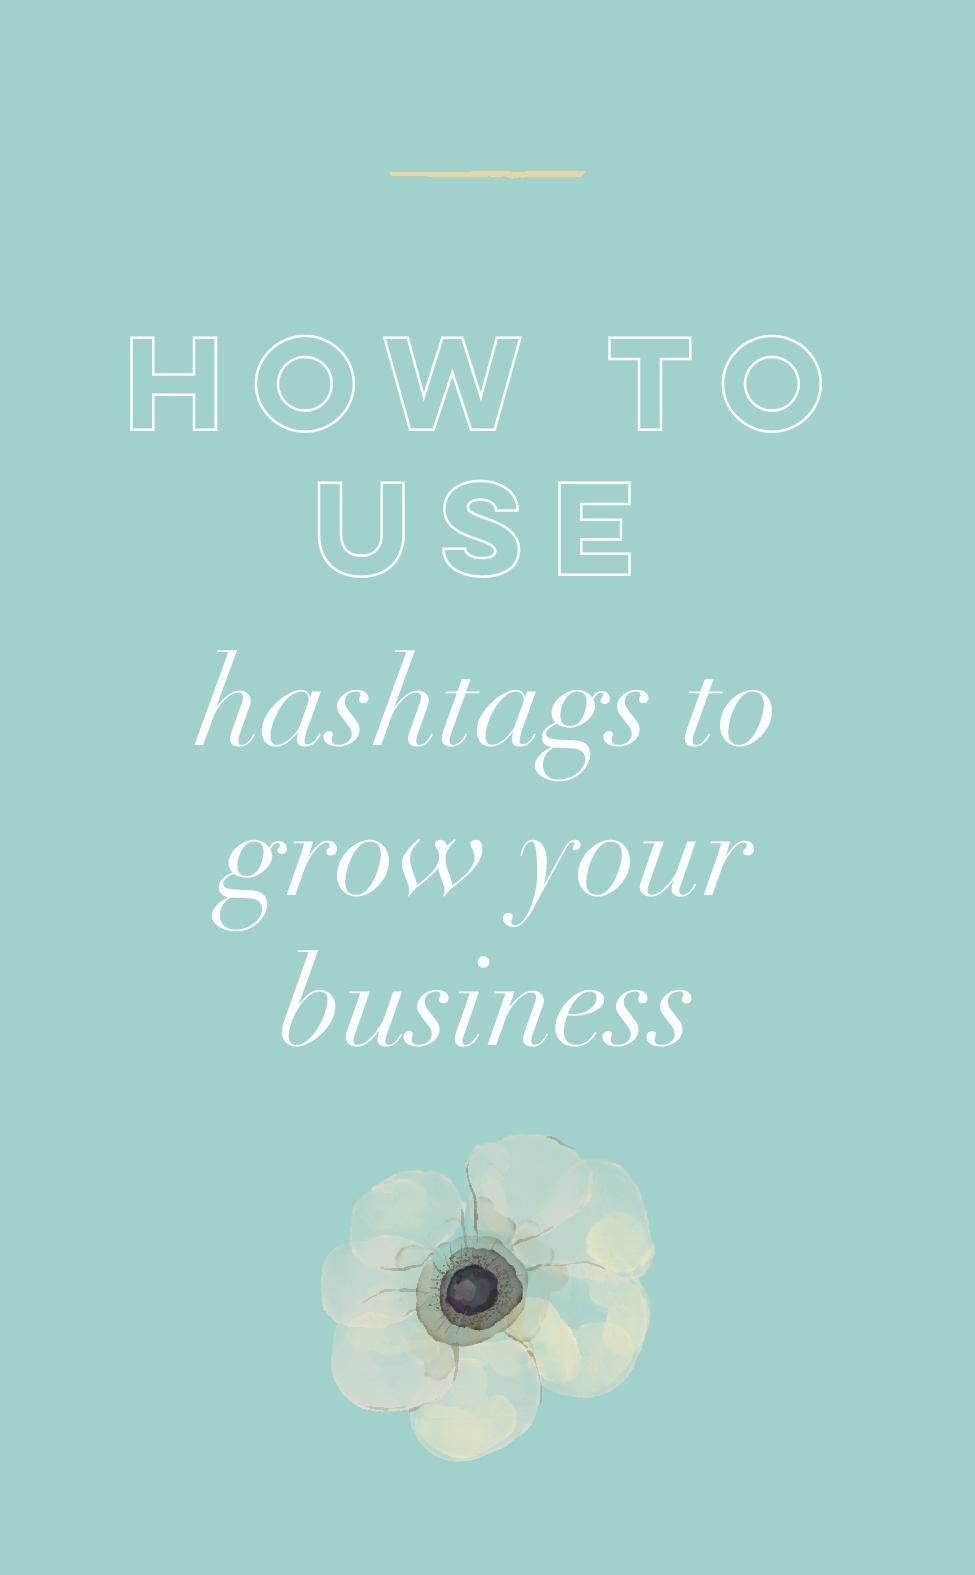 How to use hashtags-page-001.jpg